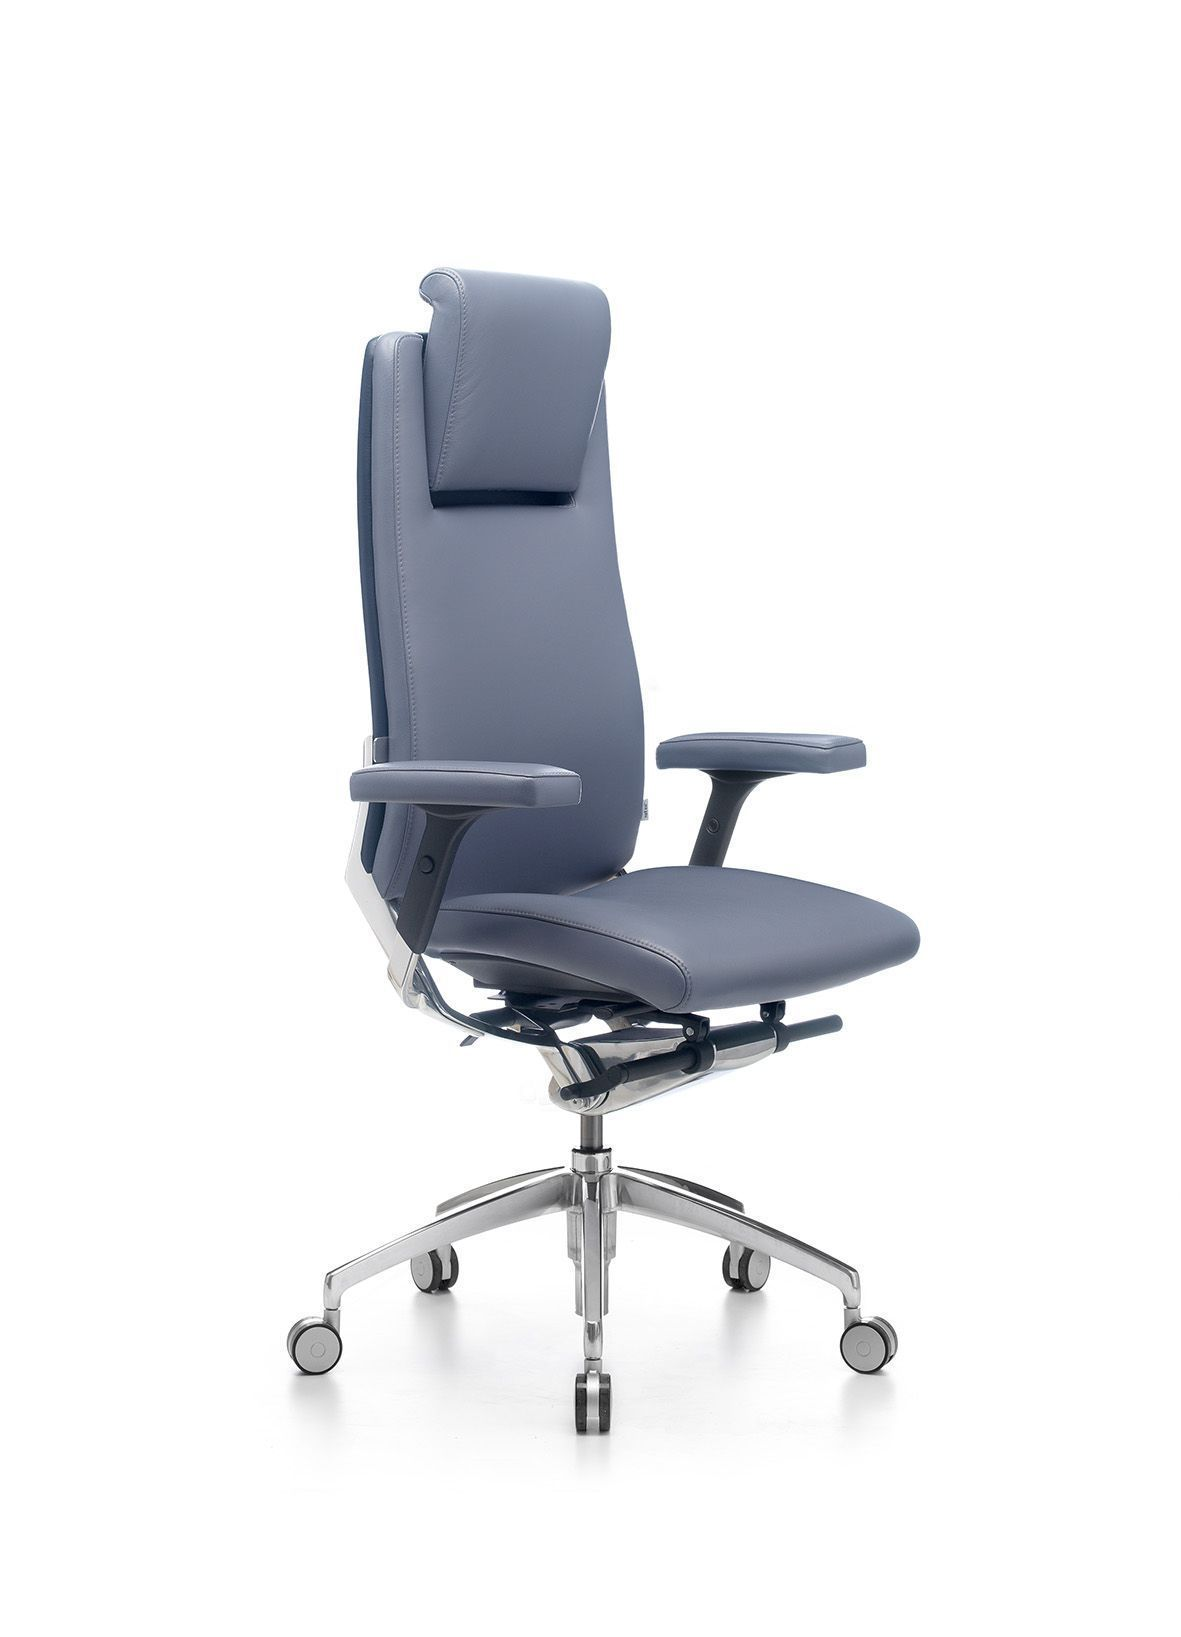 Luxurious High back ergonomic chairs designed for Busy executives who require luxury and fort in a